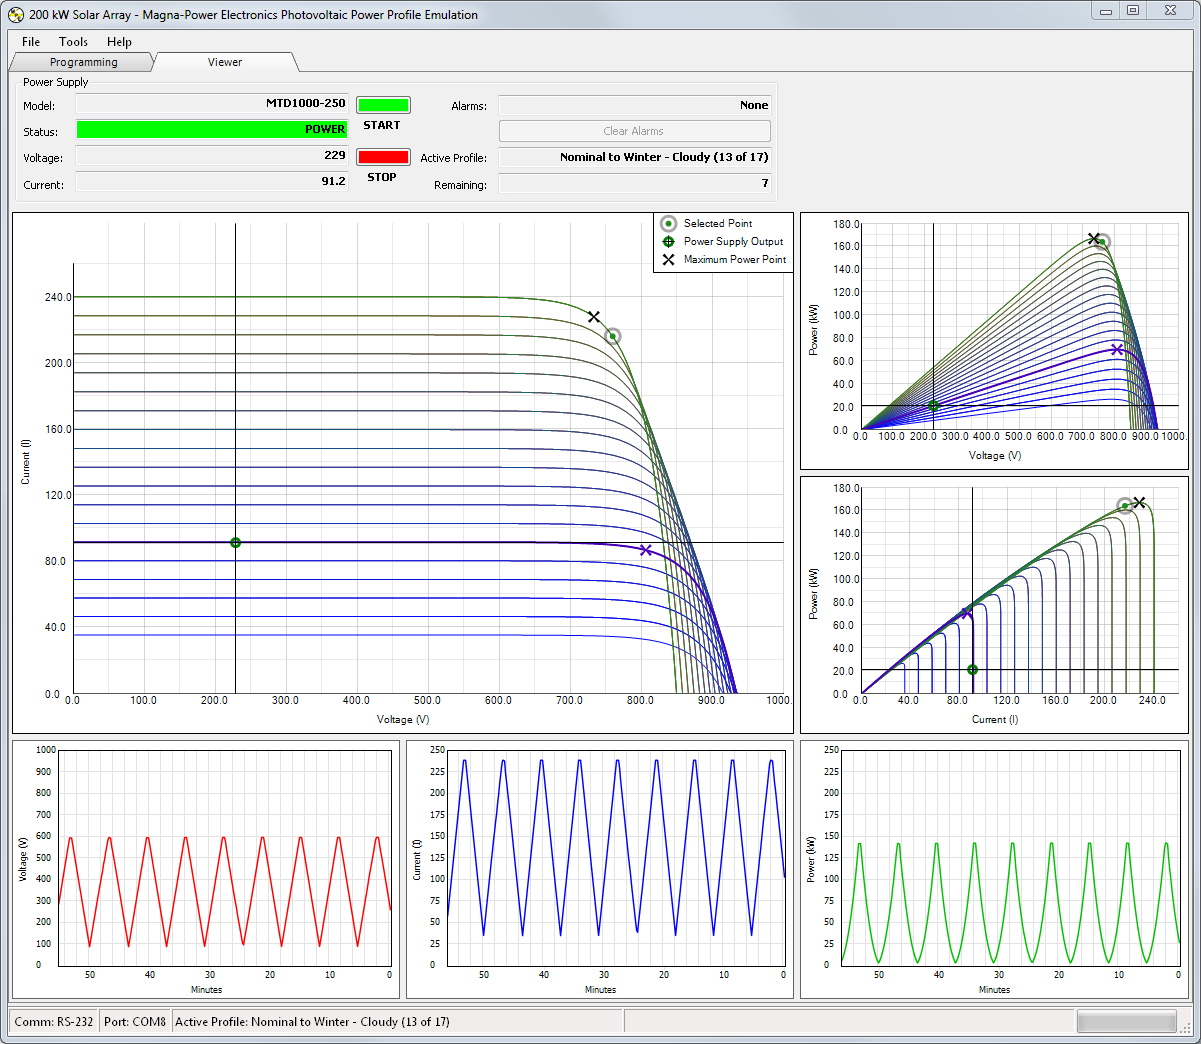 Figure 2. Photovoltaic Power Profile Emulation software's Live Output Viewer screen Icon